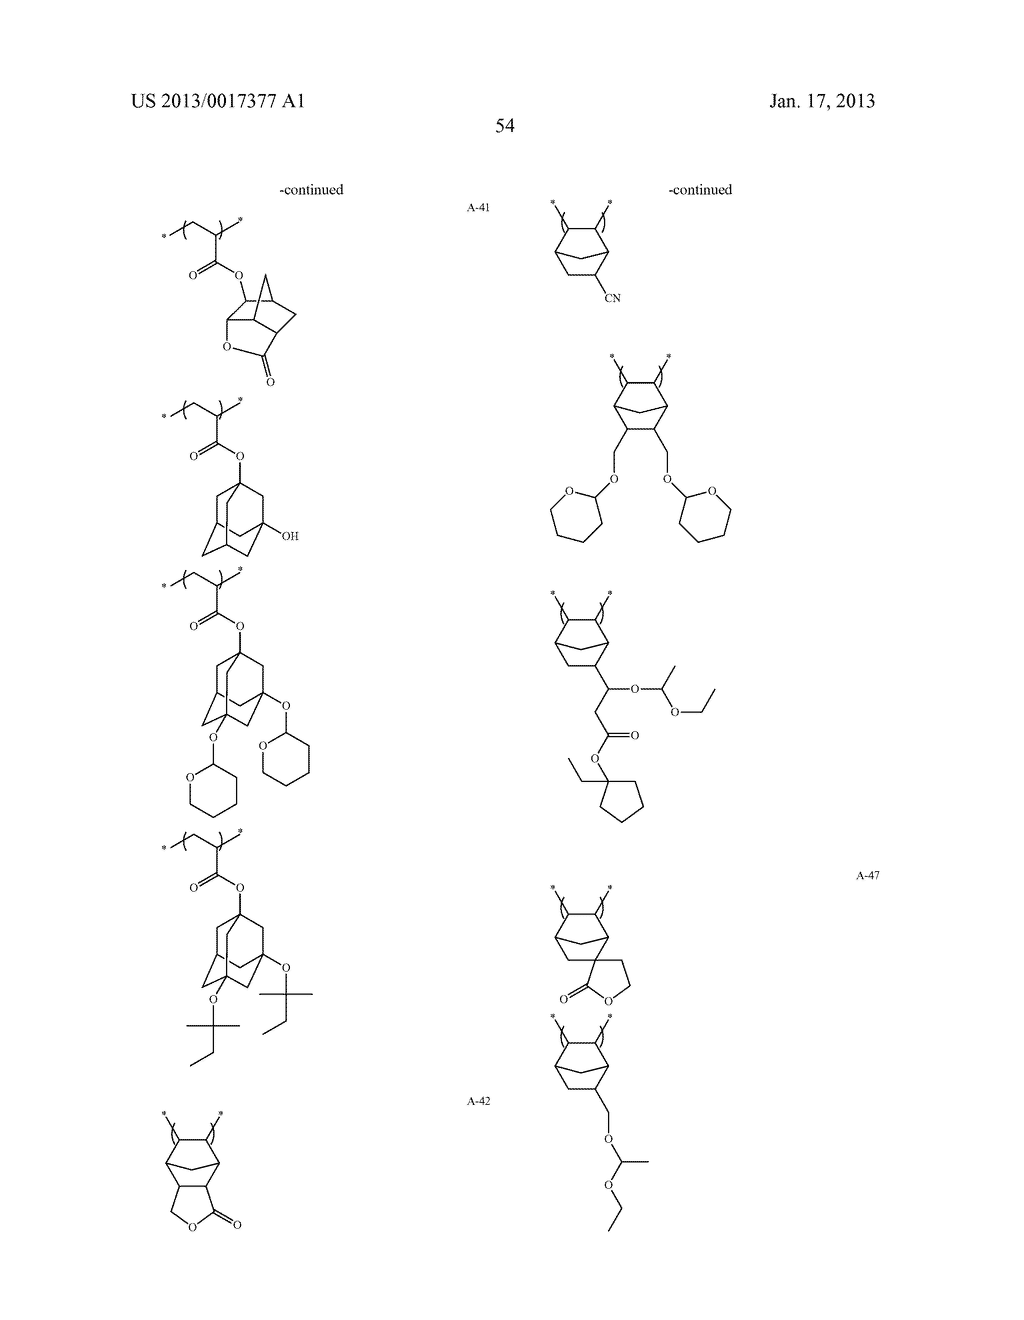 ACTINIC-RAY- OR RADIATION-SENSITIVE RESIN COMPOSITION AND METHOD OF     FORMING PATTERN USING THE SAMEAANM Kataoka; ShoheiAACI ShizuokaAACO JPAAGP Kataoka; Shohei Shizuoka JPAANM Iwato; KaoruAACI ShizuokaAACO JPAAGP Iwato; Kaoru Shizuoka JPAANM Kamimura; SouAACI ShizuokaAACO JPAAGP Kamimura; Sou Shizuoka JPAANM Tsuchihashi; ToruAACI ShizuokaAACO JPAAGP Tsuchihashi; Toru Shizuoka JPAANM Enomoto; YuichiroAACI ShizuokaAACO JPAAGP Enomoto; Yuichiro Shizuoka JPAANM Fujii; KanaAACI ShizuokaAACO JPAAGP Fujii; Kana Shizuoka JPAANM Mizutani; KazuyoshiAACI ShizuokaAACO JPAAGP Mizutani; Kazuyoshi Shizuoka JPAANM Tarutani; ShinjiAACI ShizuokaAACO JPAAGP Tarutani; Shinji Shizuoka JPAANM Kato; KeitaAACI ShizuokaAACO JPAAGP Kato; Keita Shizuoka JP - diagram, schematic, and image 55